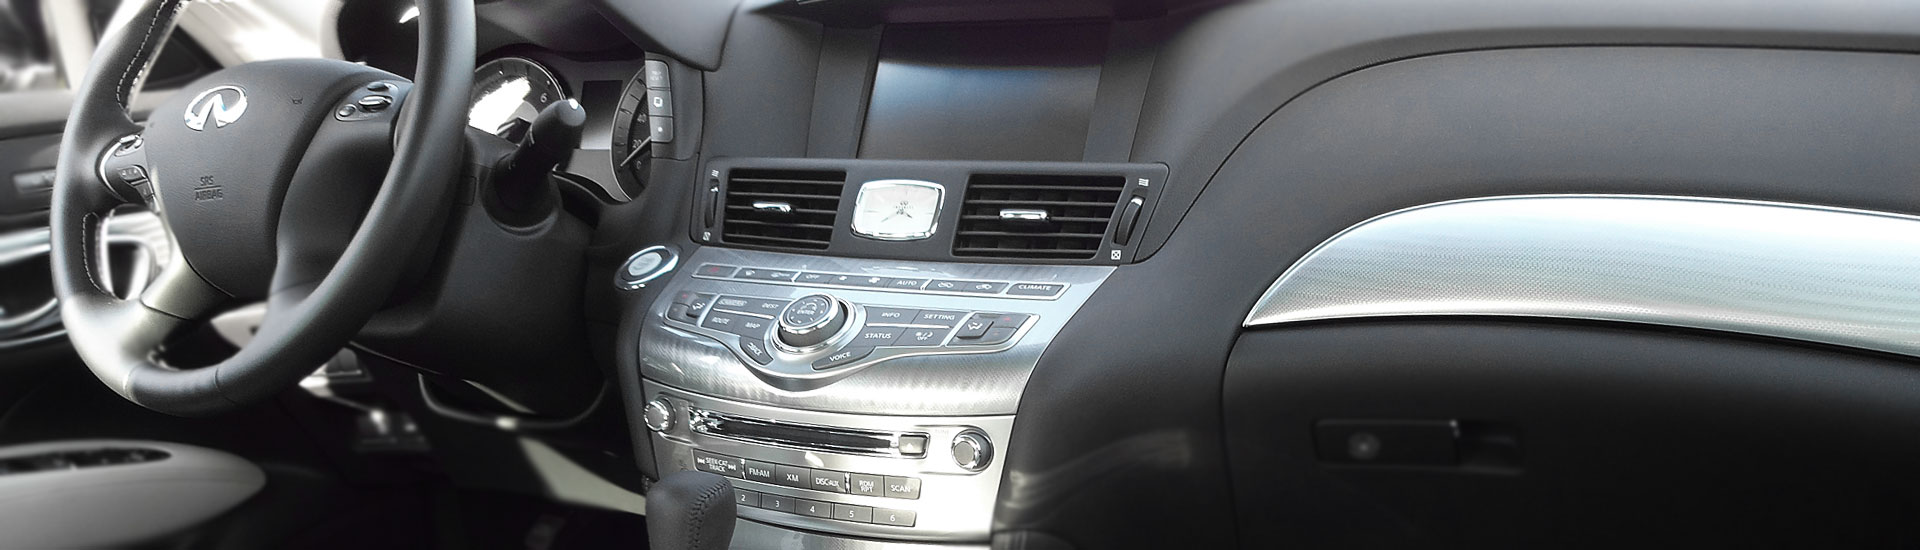 Infiniti Q70 Custom Dash Kits